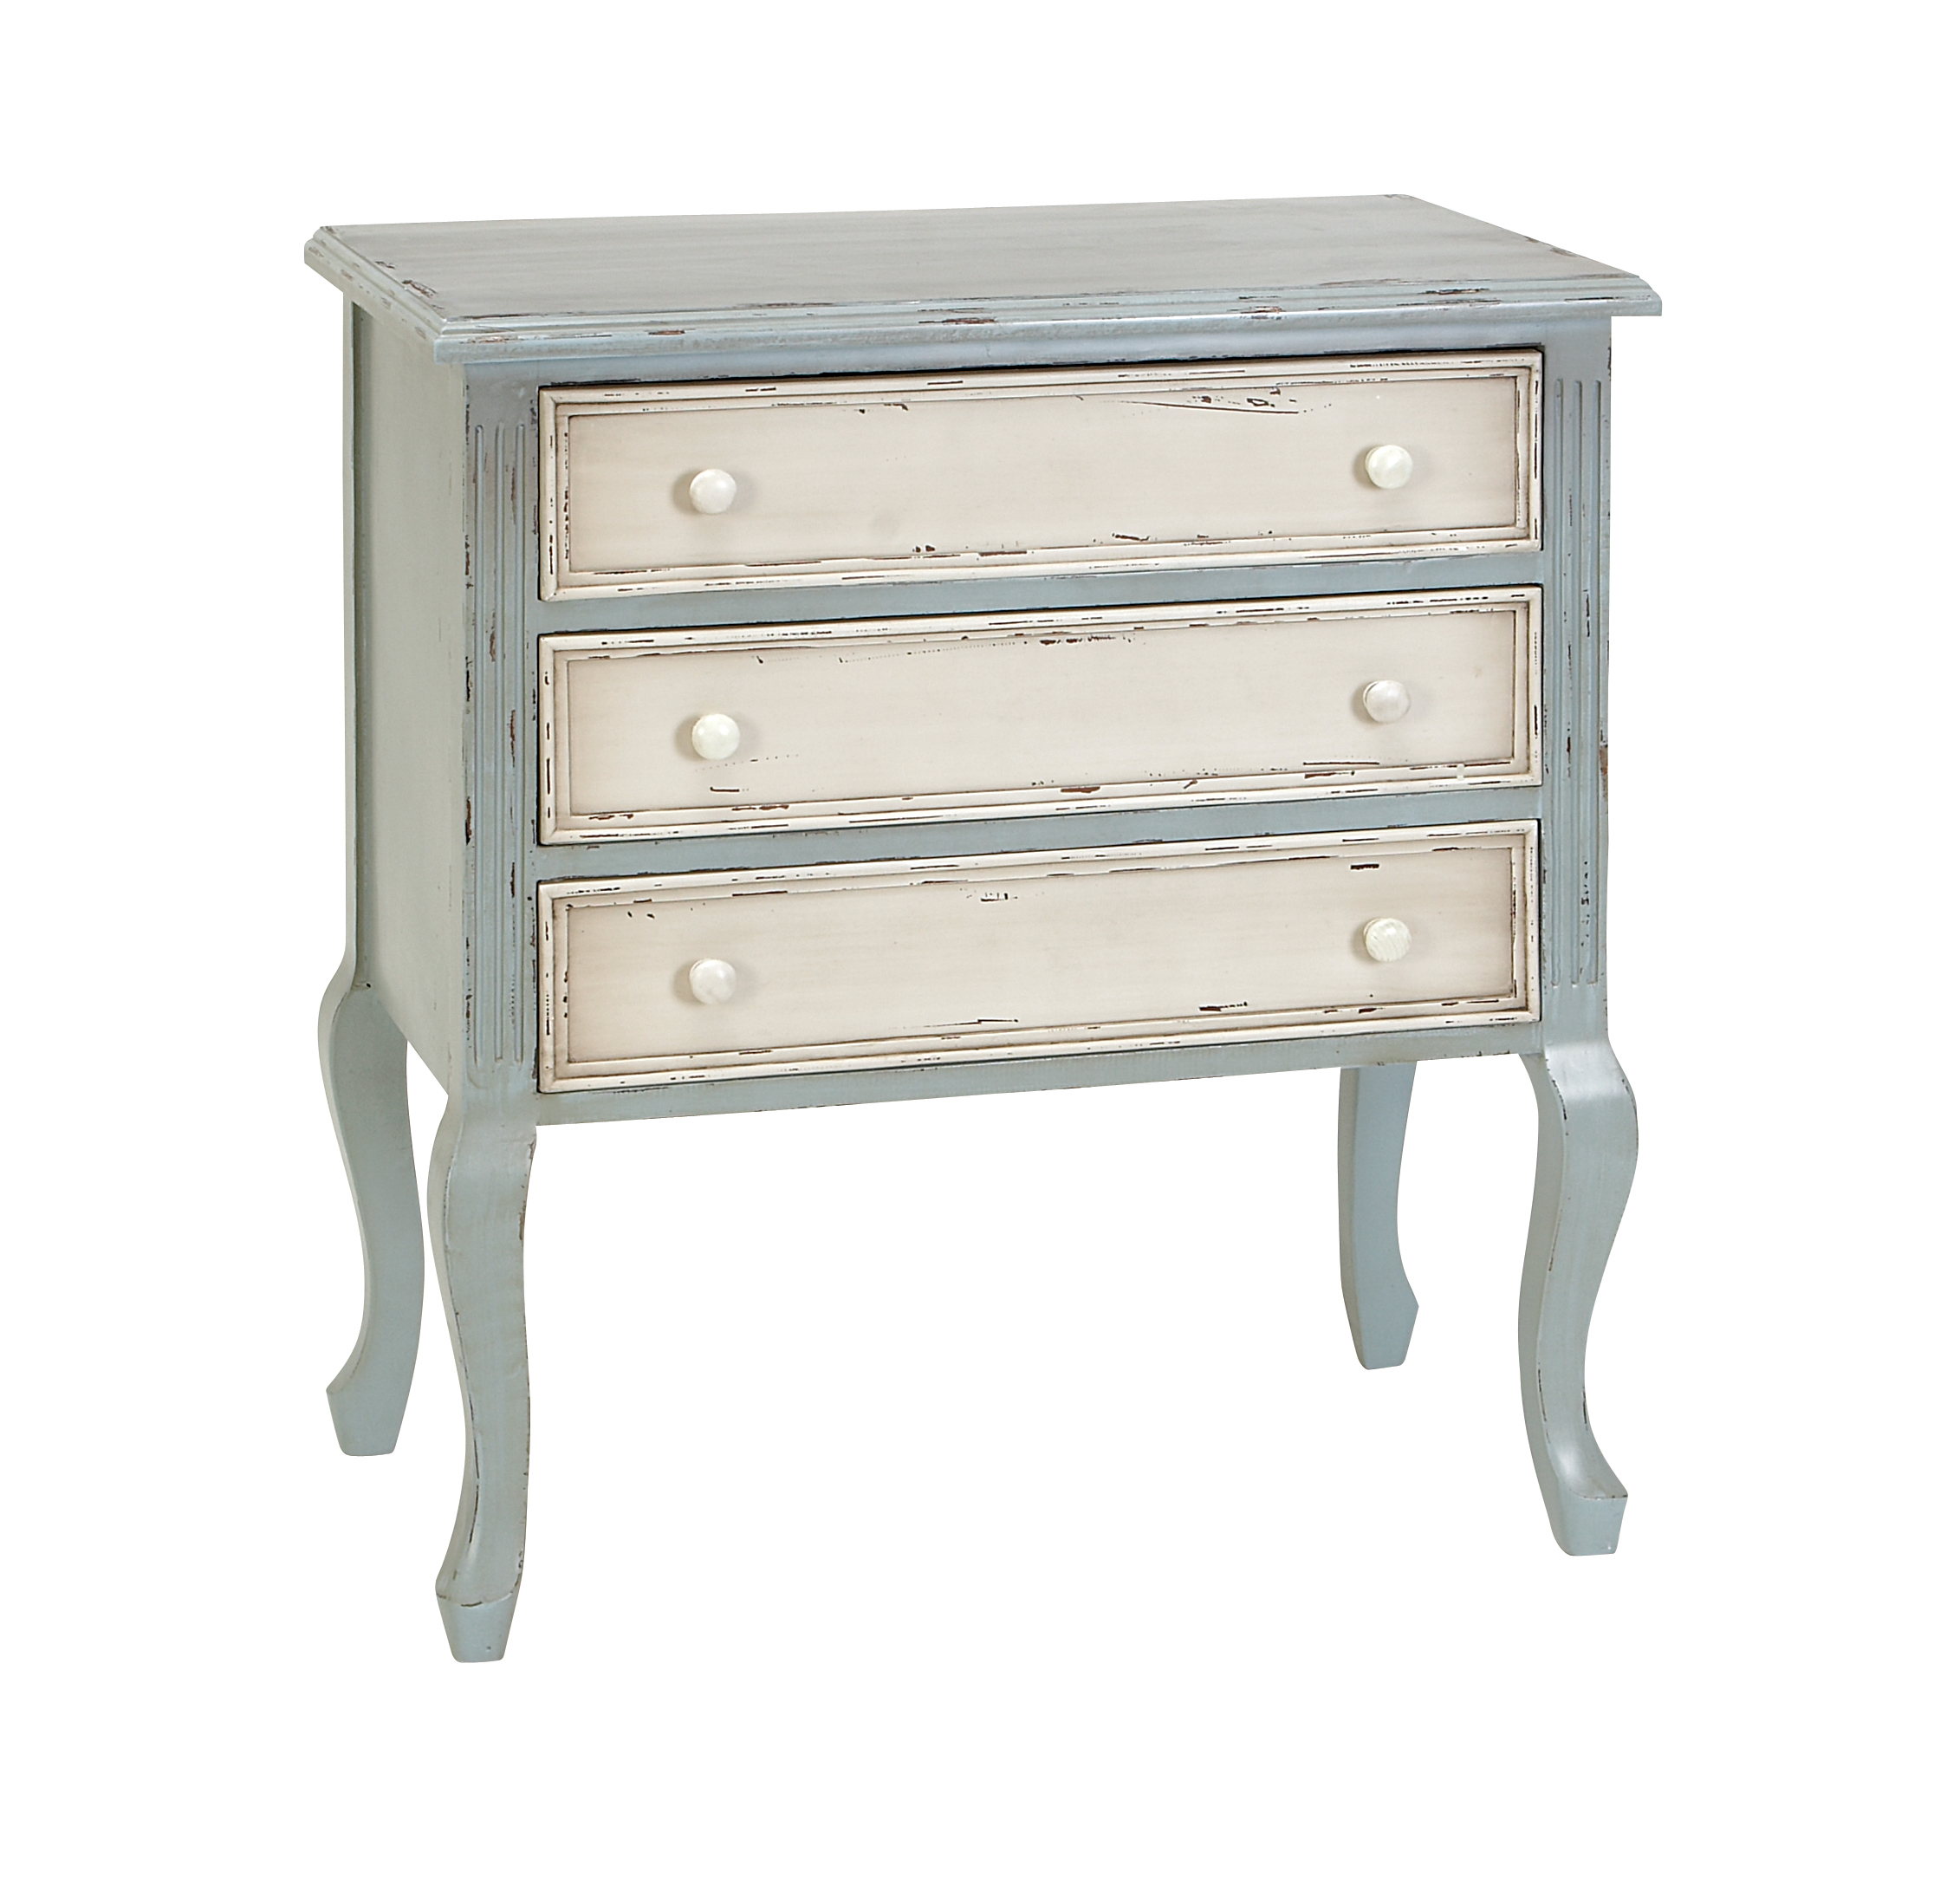 Decmode Farmhouse 33 Inch Distressed Wooden Chest